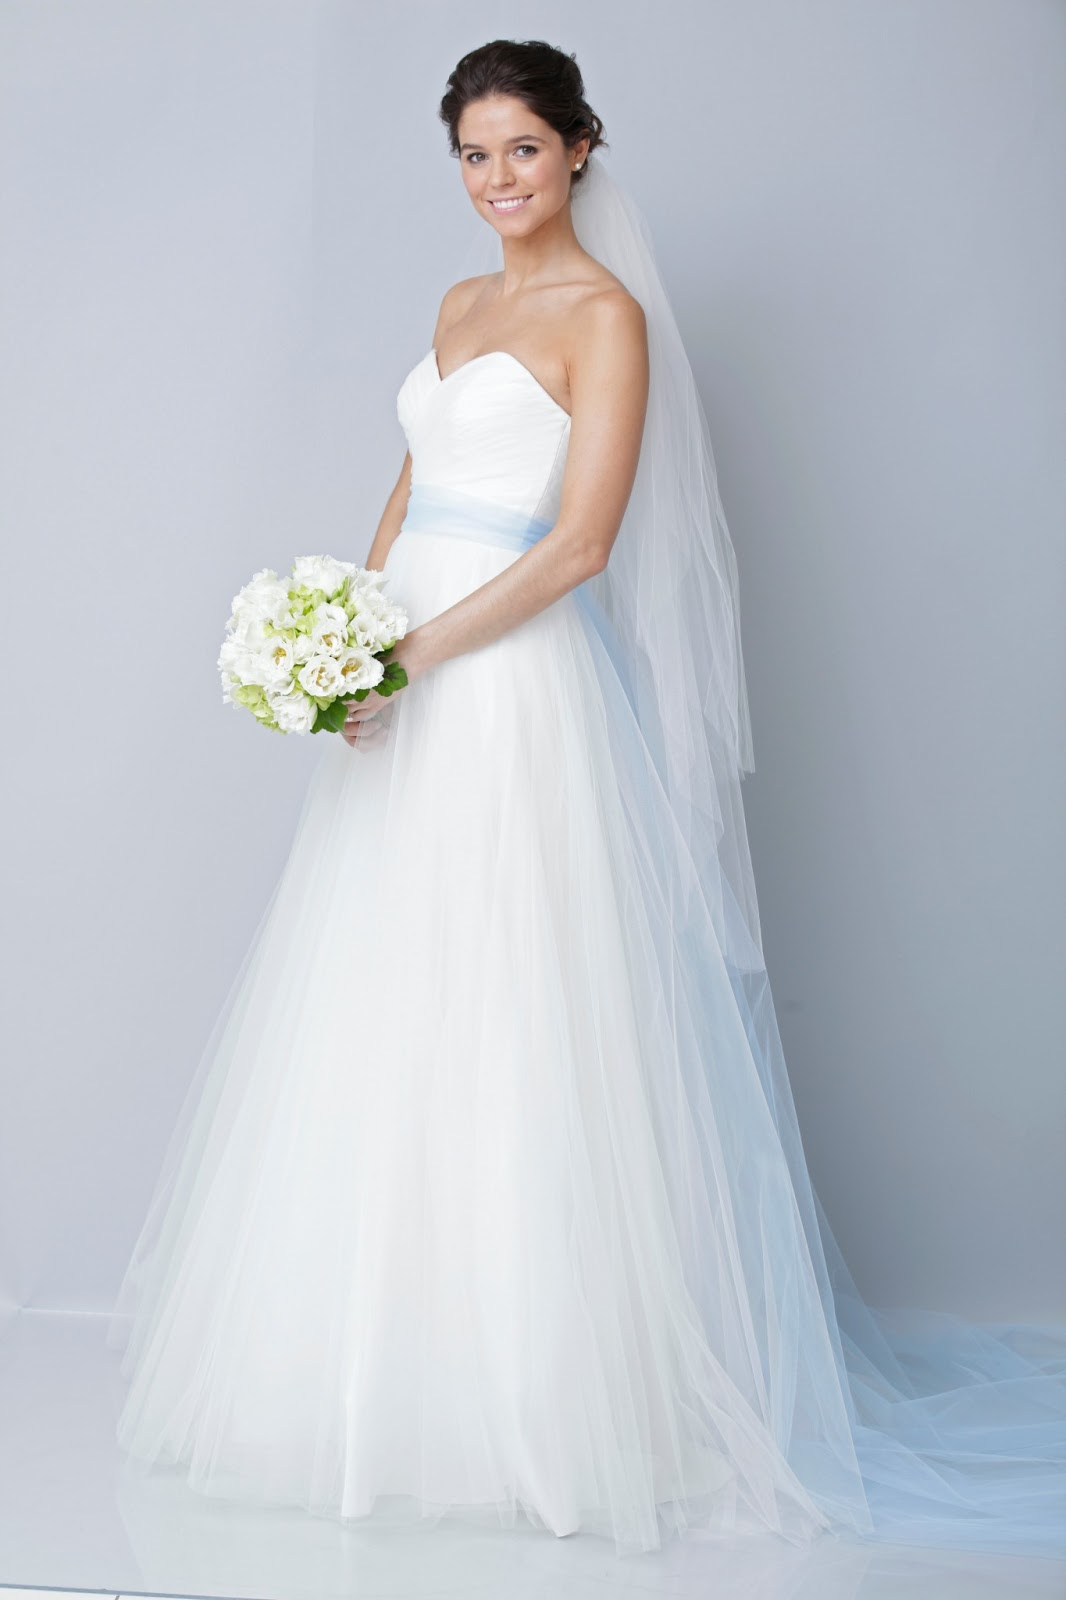 CooLingerie Are you get bored with the WHITE wedding dress